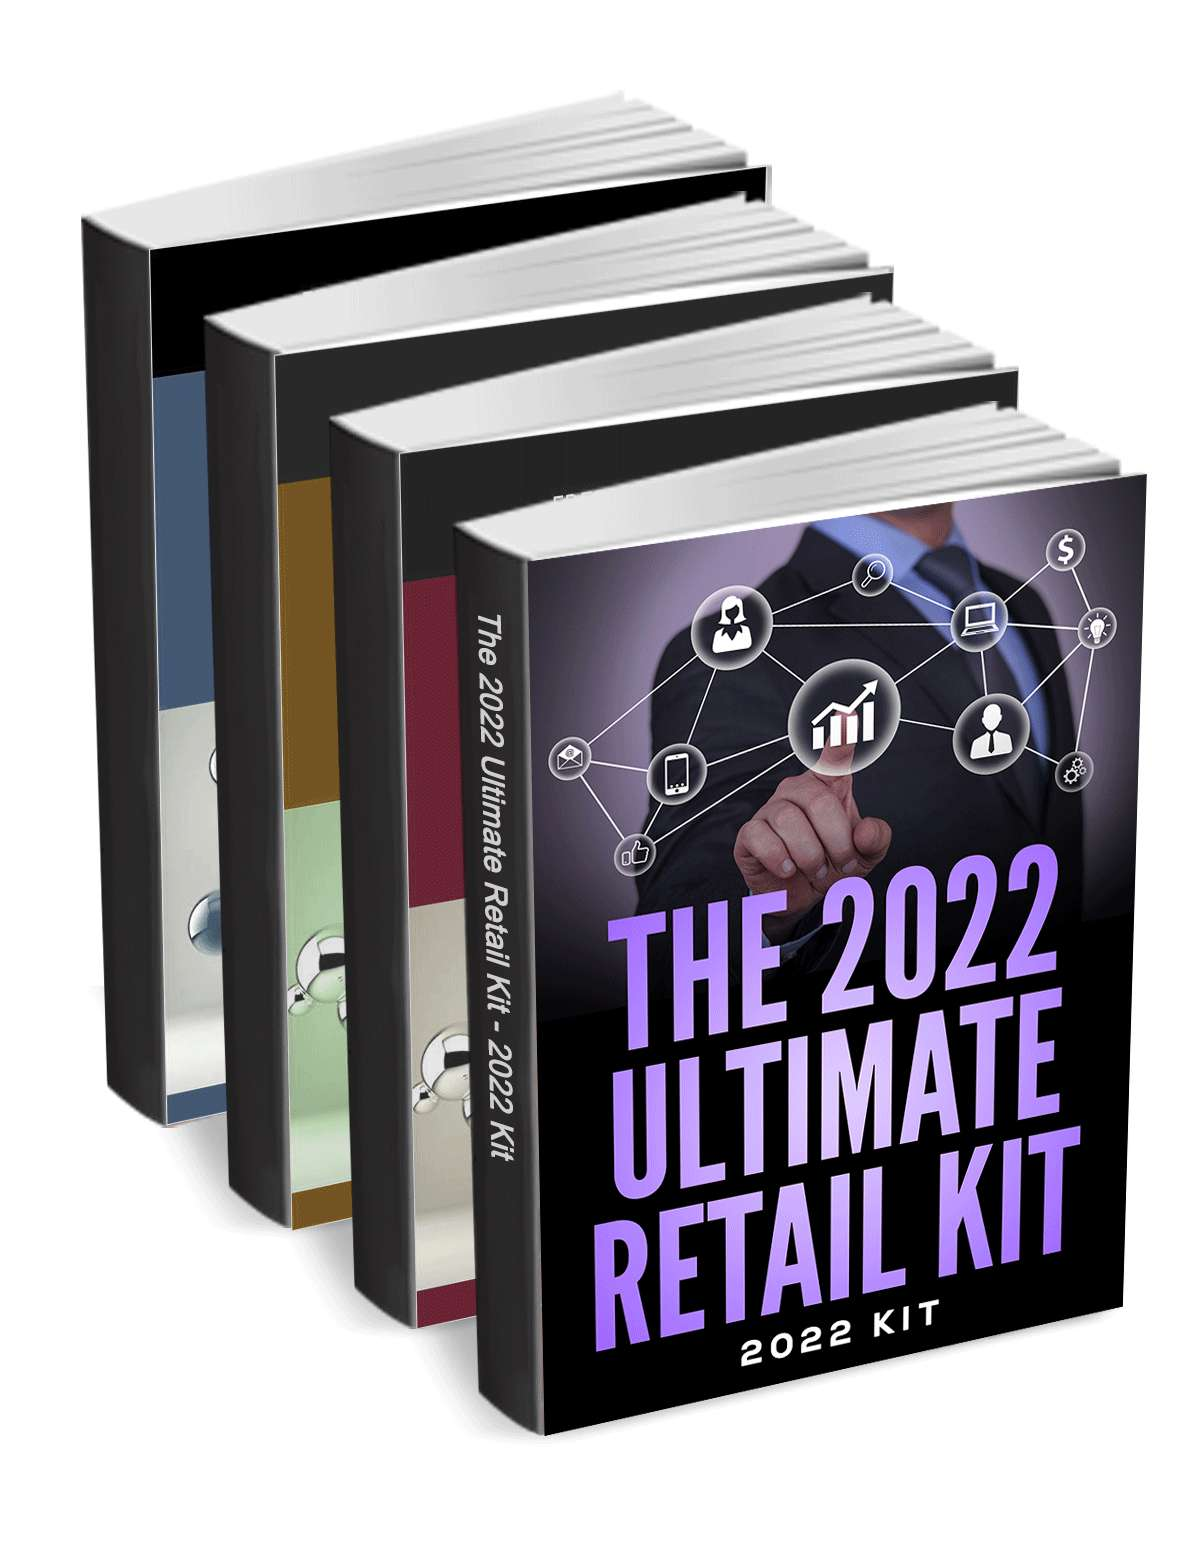 The 2016 Ultimate Retail Kit